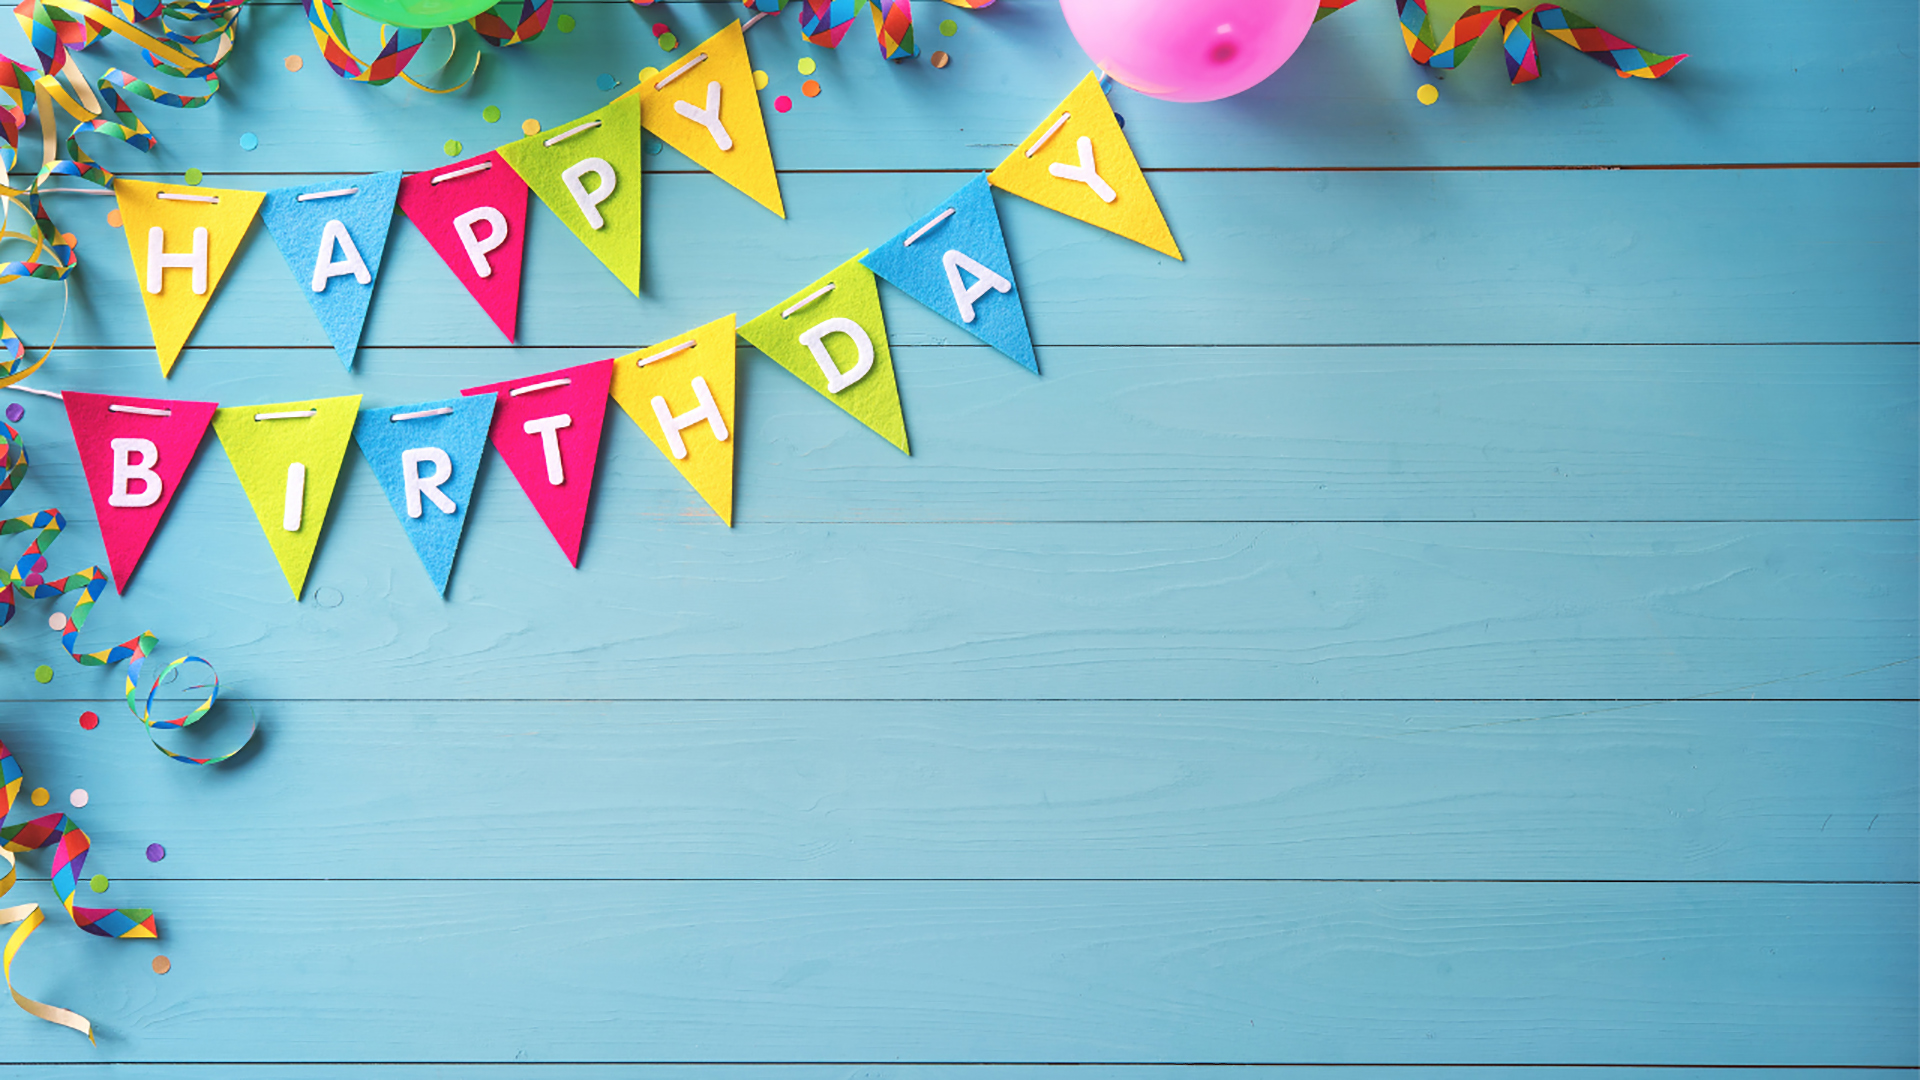 Happy Birthday bunting. Virtual background to use on Zoom, Microsoft Teams, Skype, Google Meet, WebEx or any other compatible app.